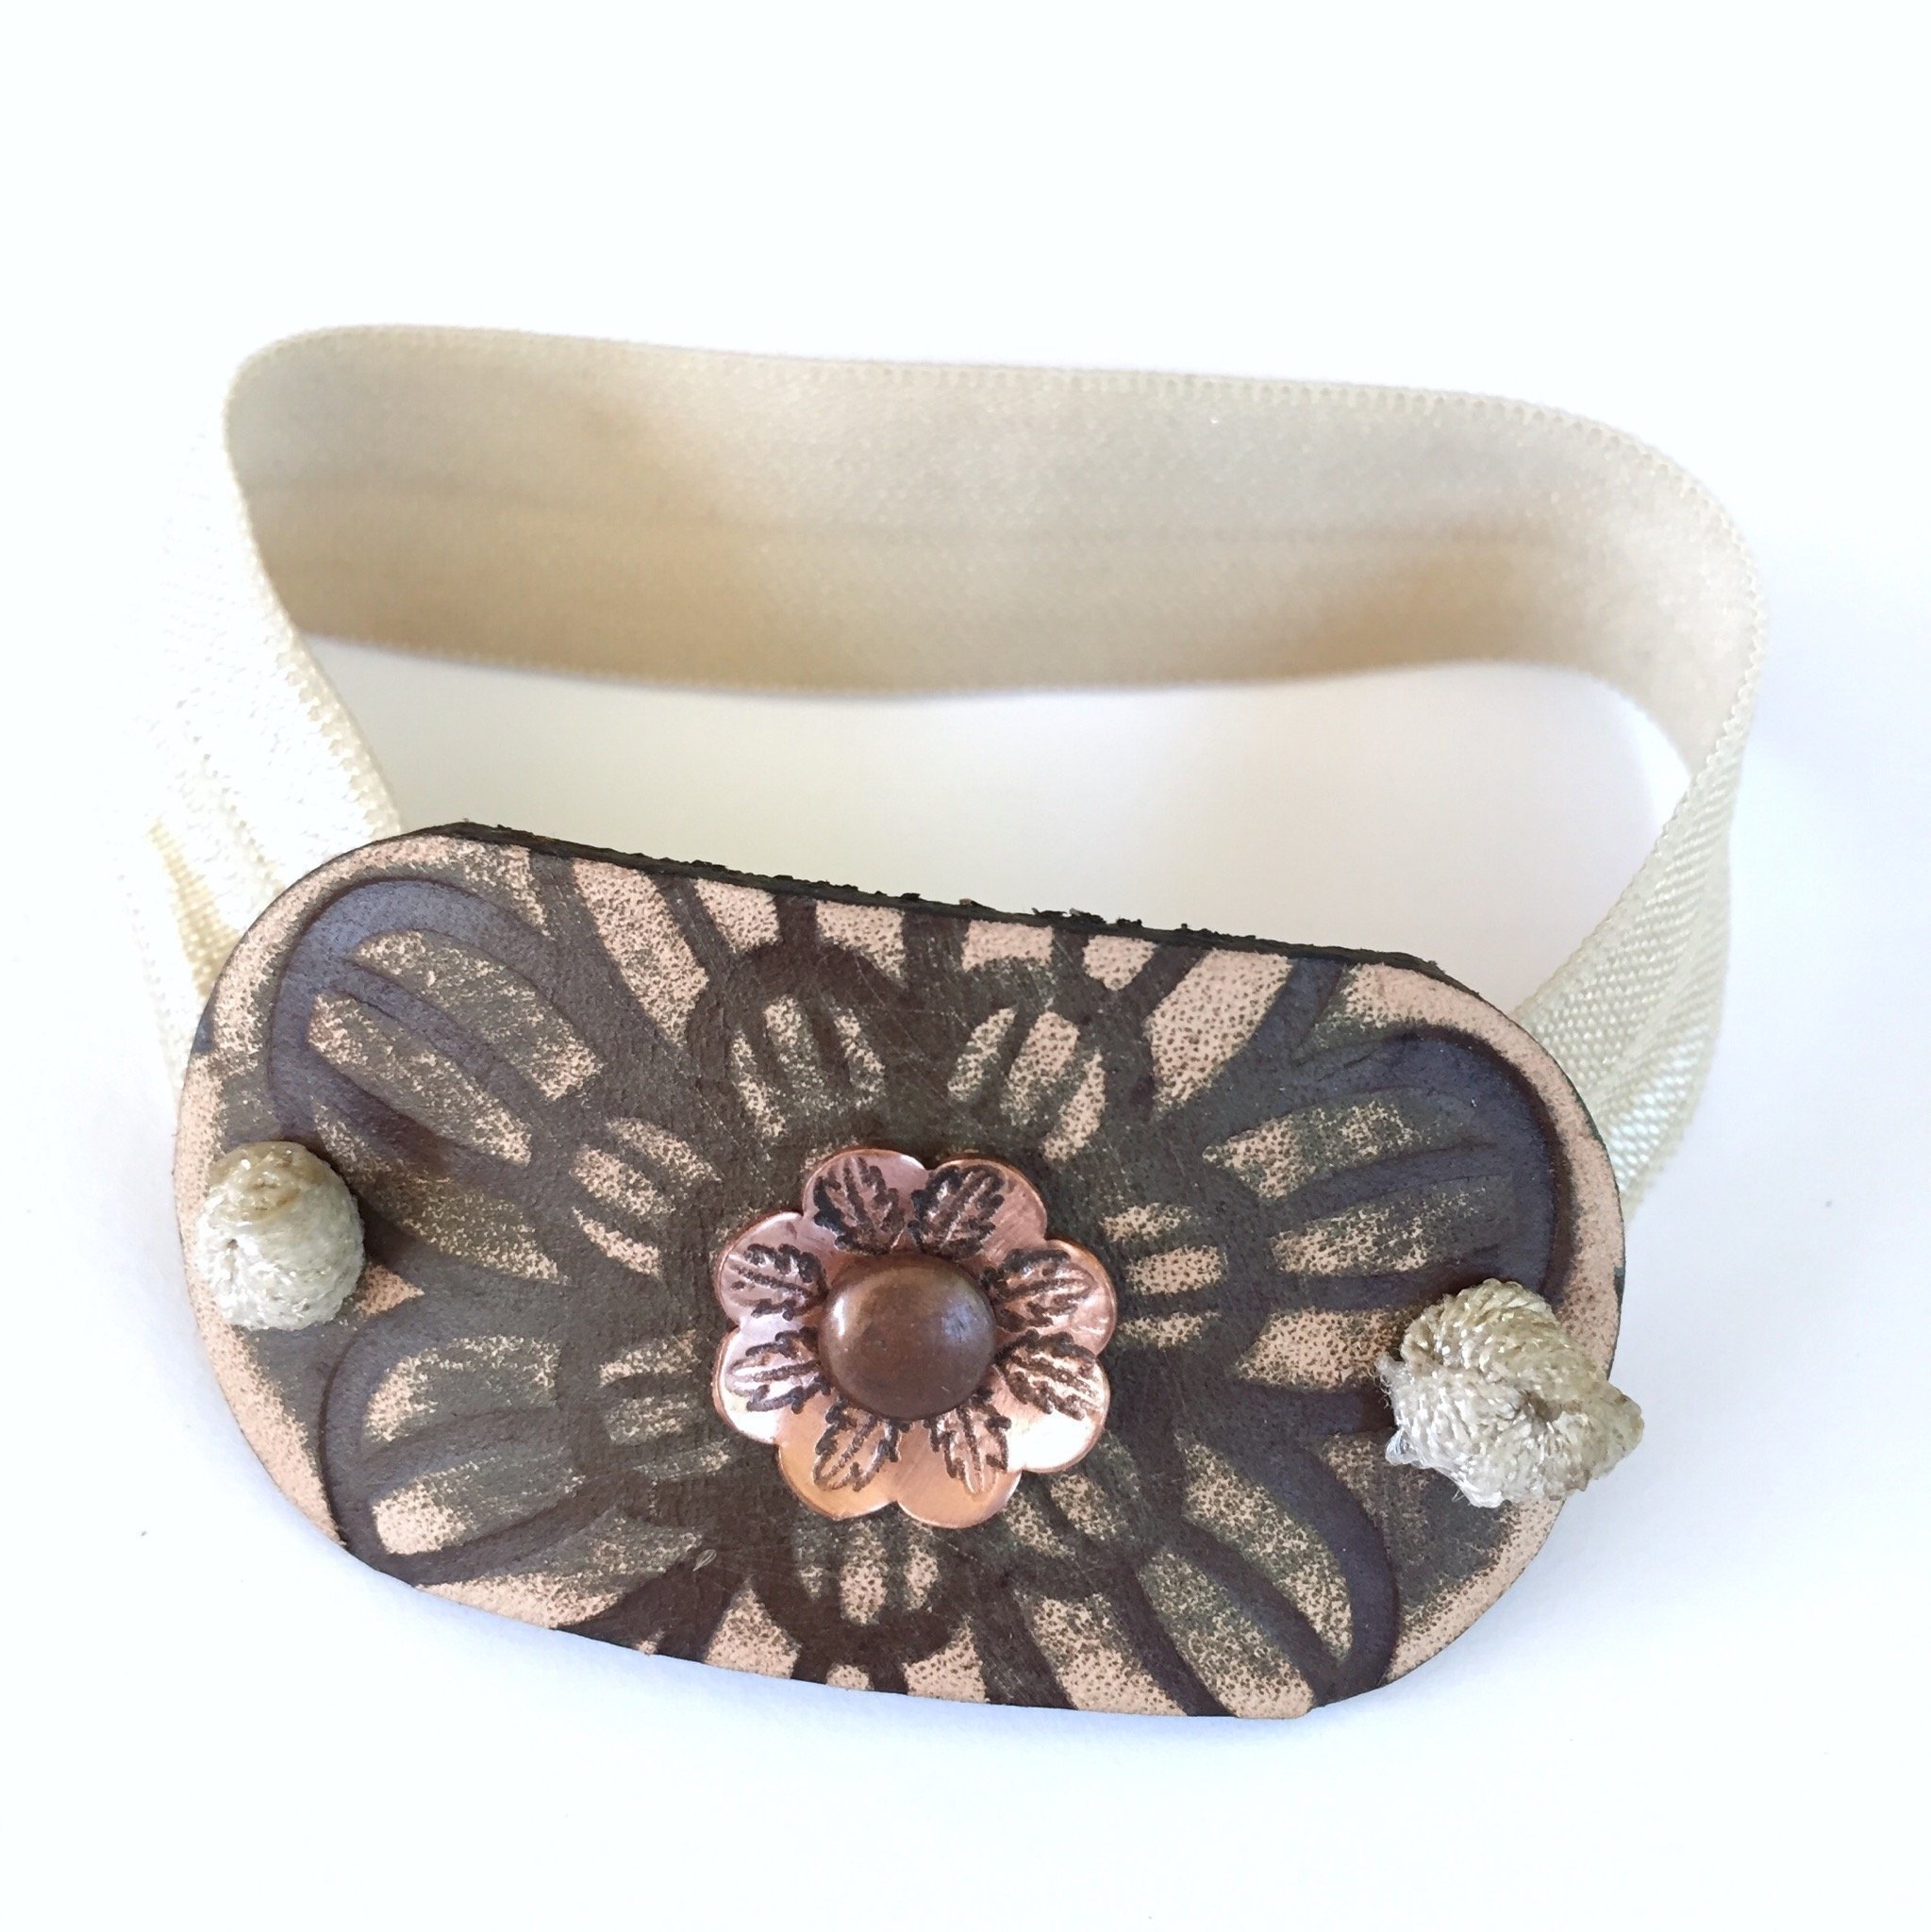 Boho Leather Ponytail Holder Oval with Copper Flower and Flat Elastic by BANDANA GIRL Ponytail Wrap Hair Accessory Gift For Her Gift Idea for Her for Women with Long Hair by BANDANA GIRL